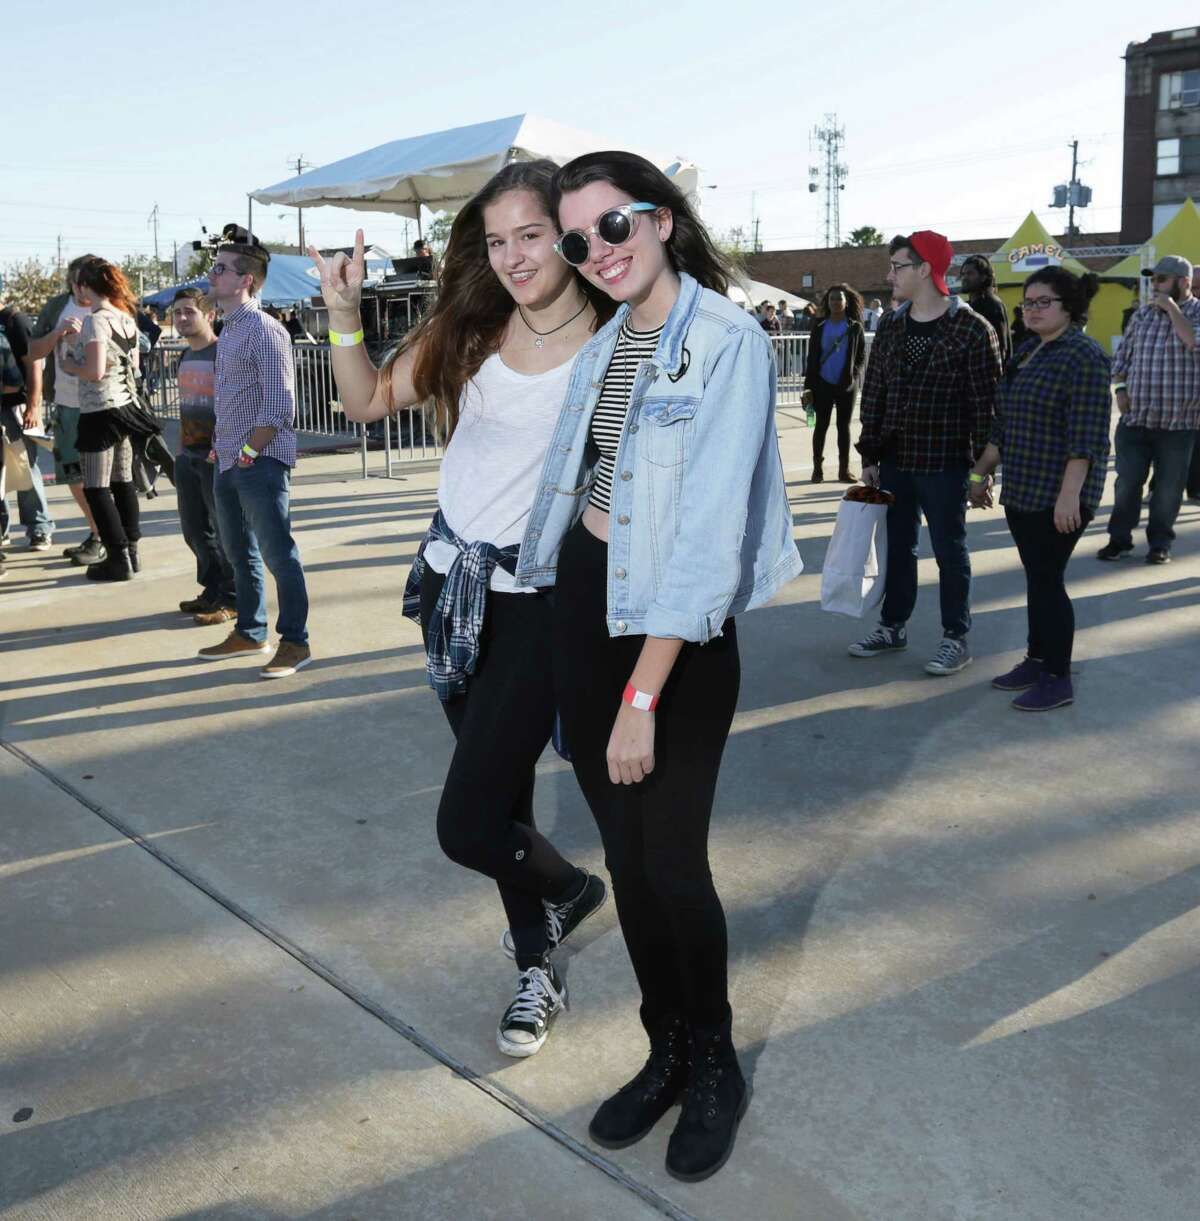 People pose for a photo at Houston Whatever Fest Saturday, Nov. 21, 2015, in Houston.